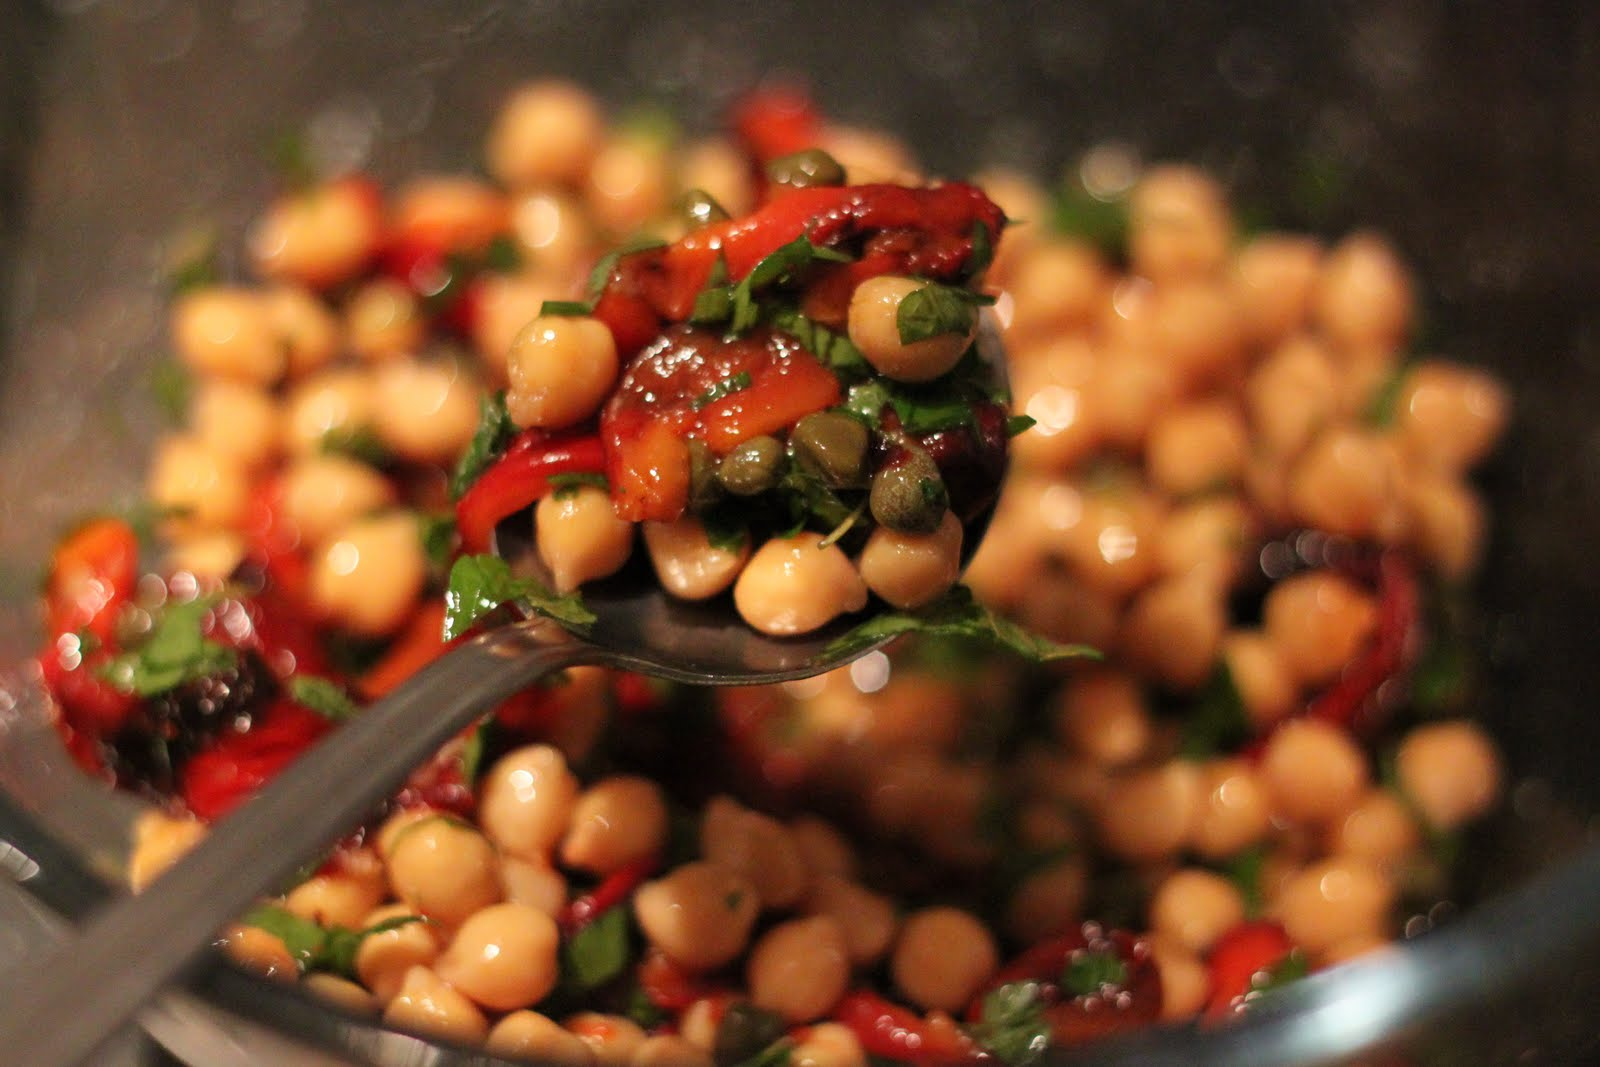 Dine at Mine: Roasted Red Pepper and Chickpea Salad